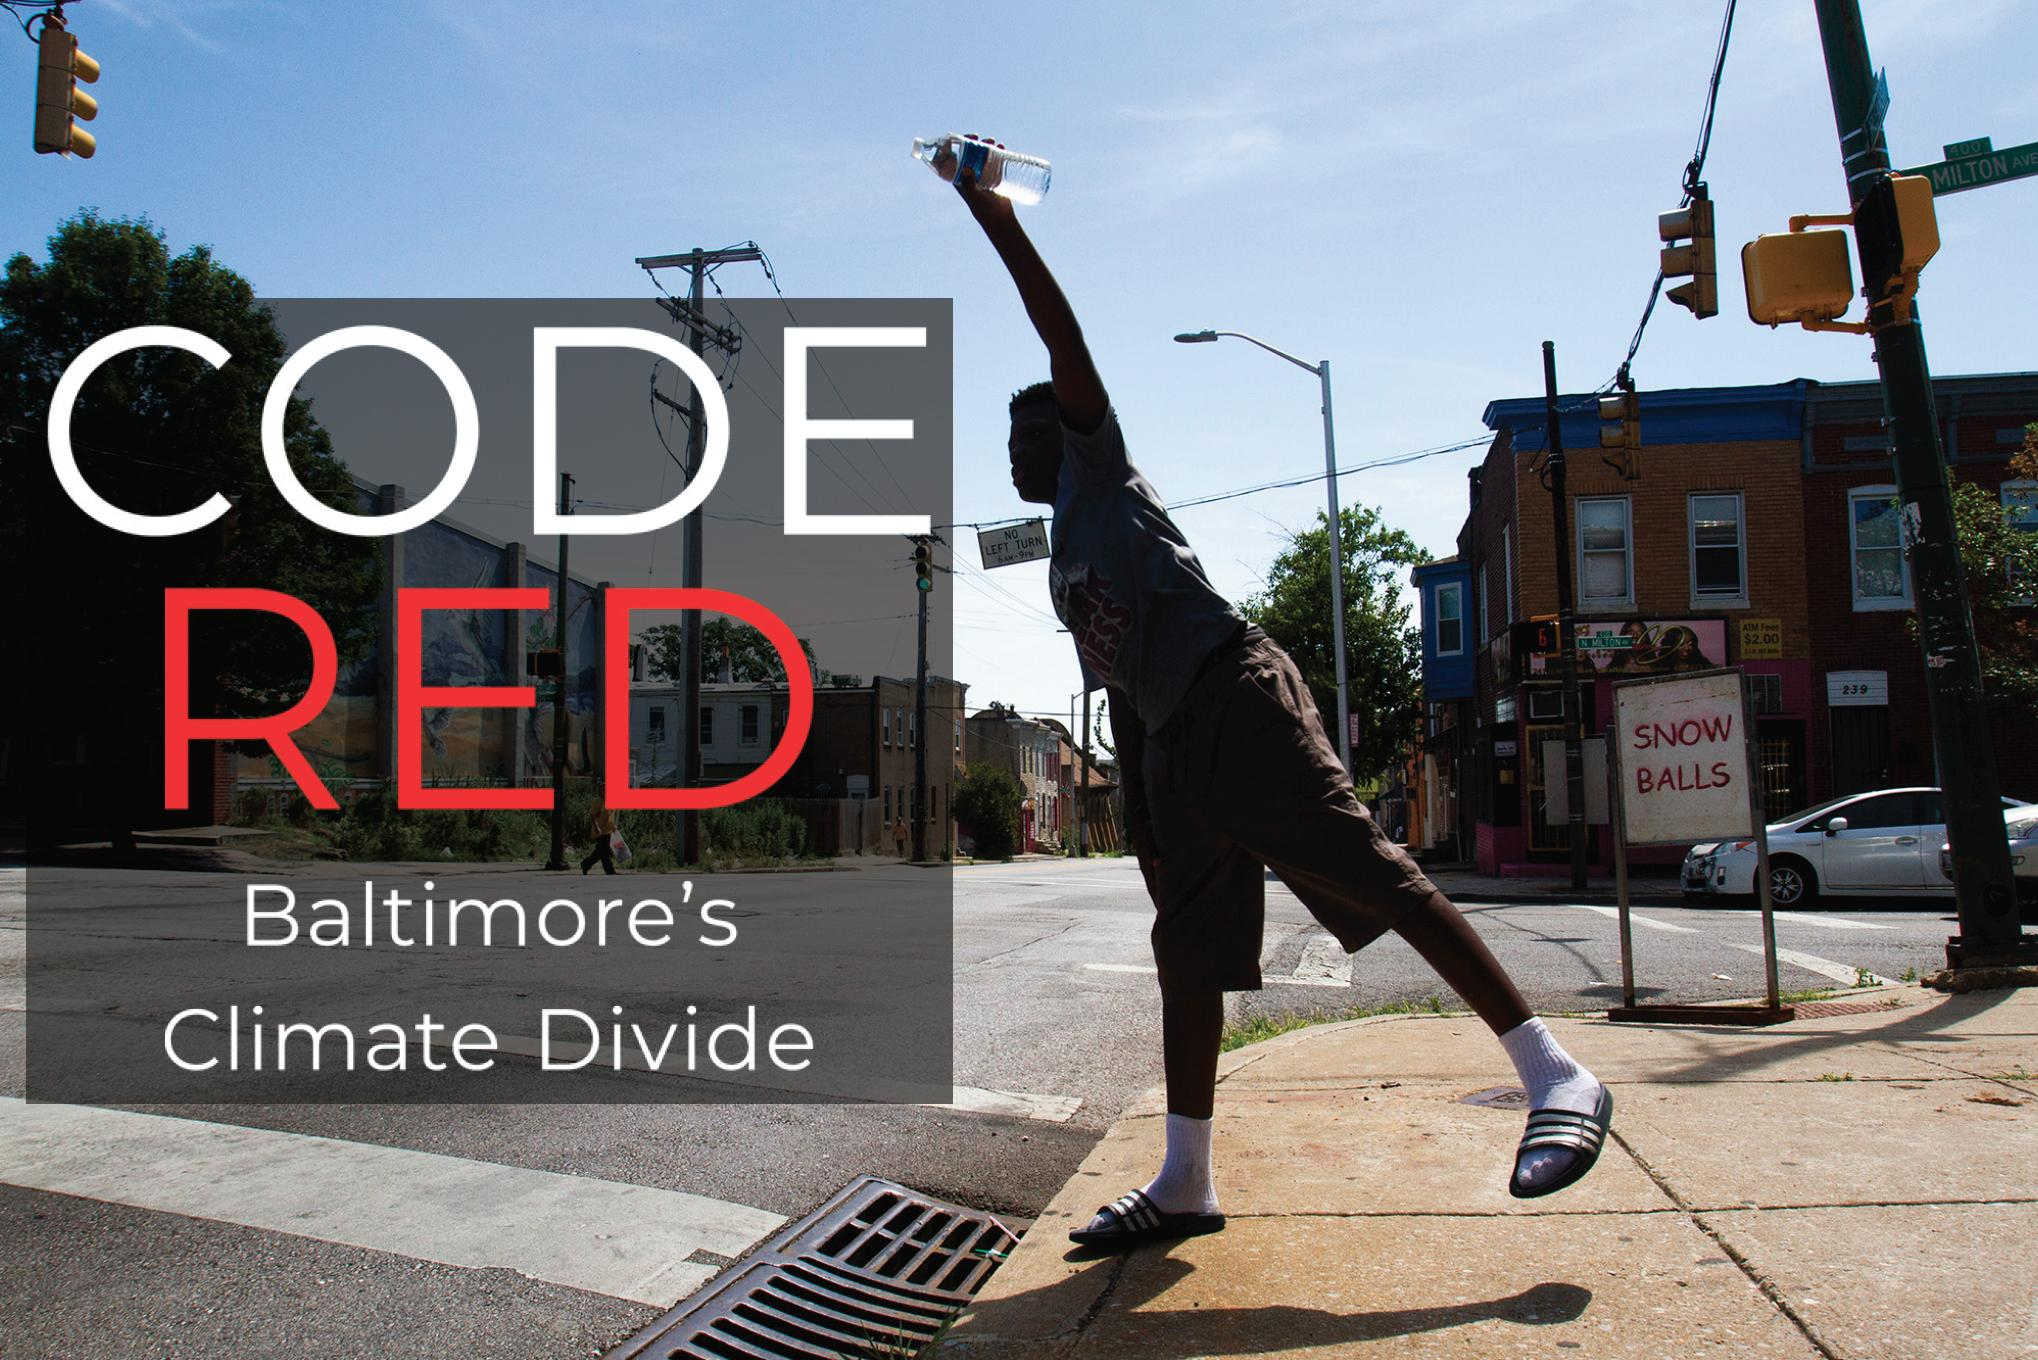 Code Red: Baltimore's Climate Divide, with NPR